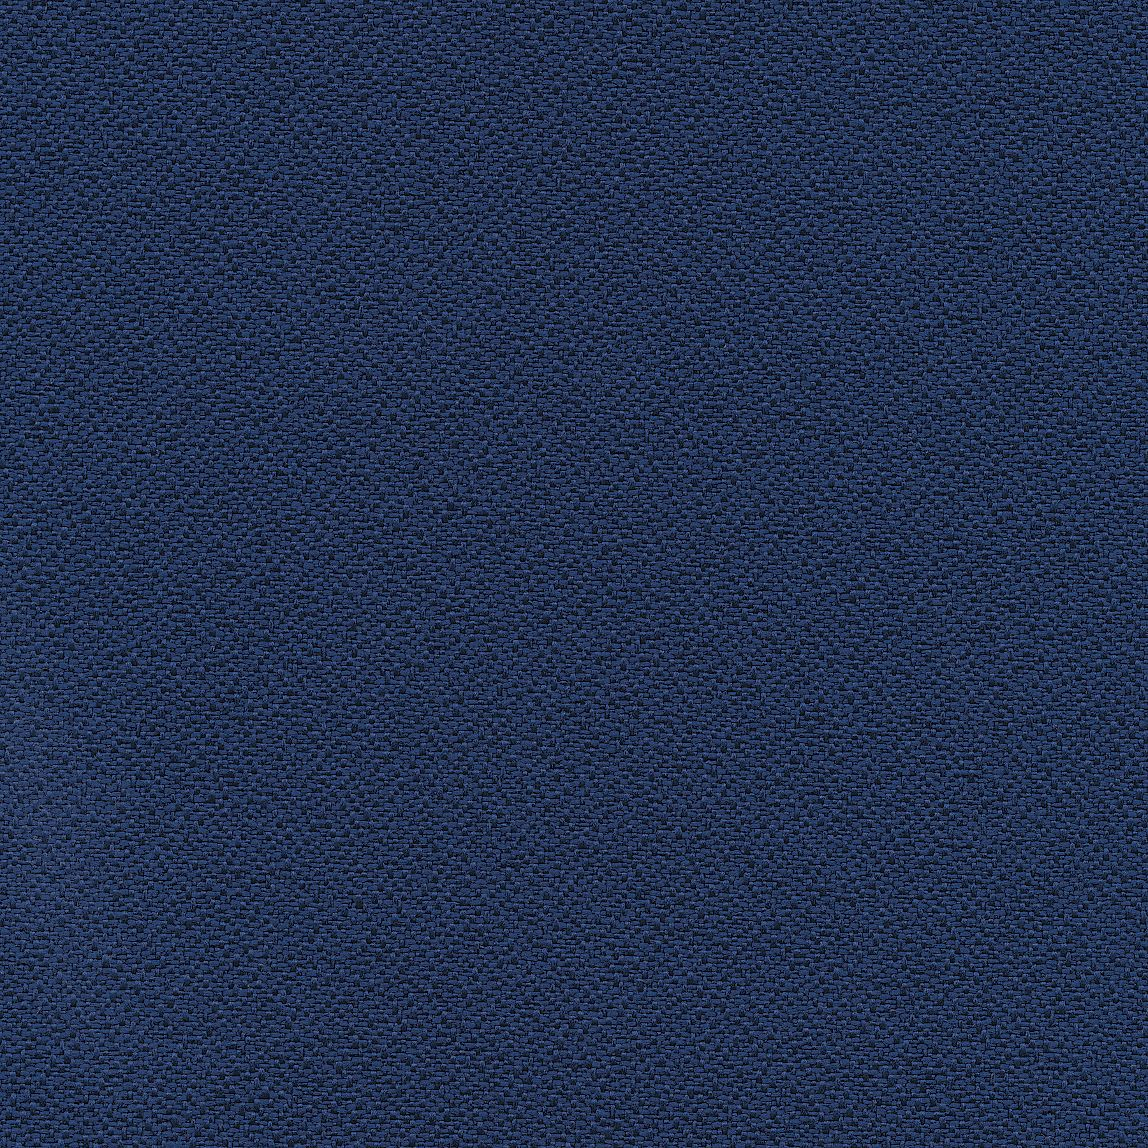 Centurion Seating Indigo Swatch